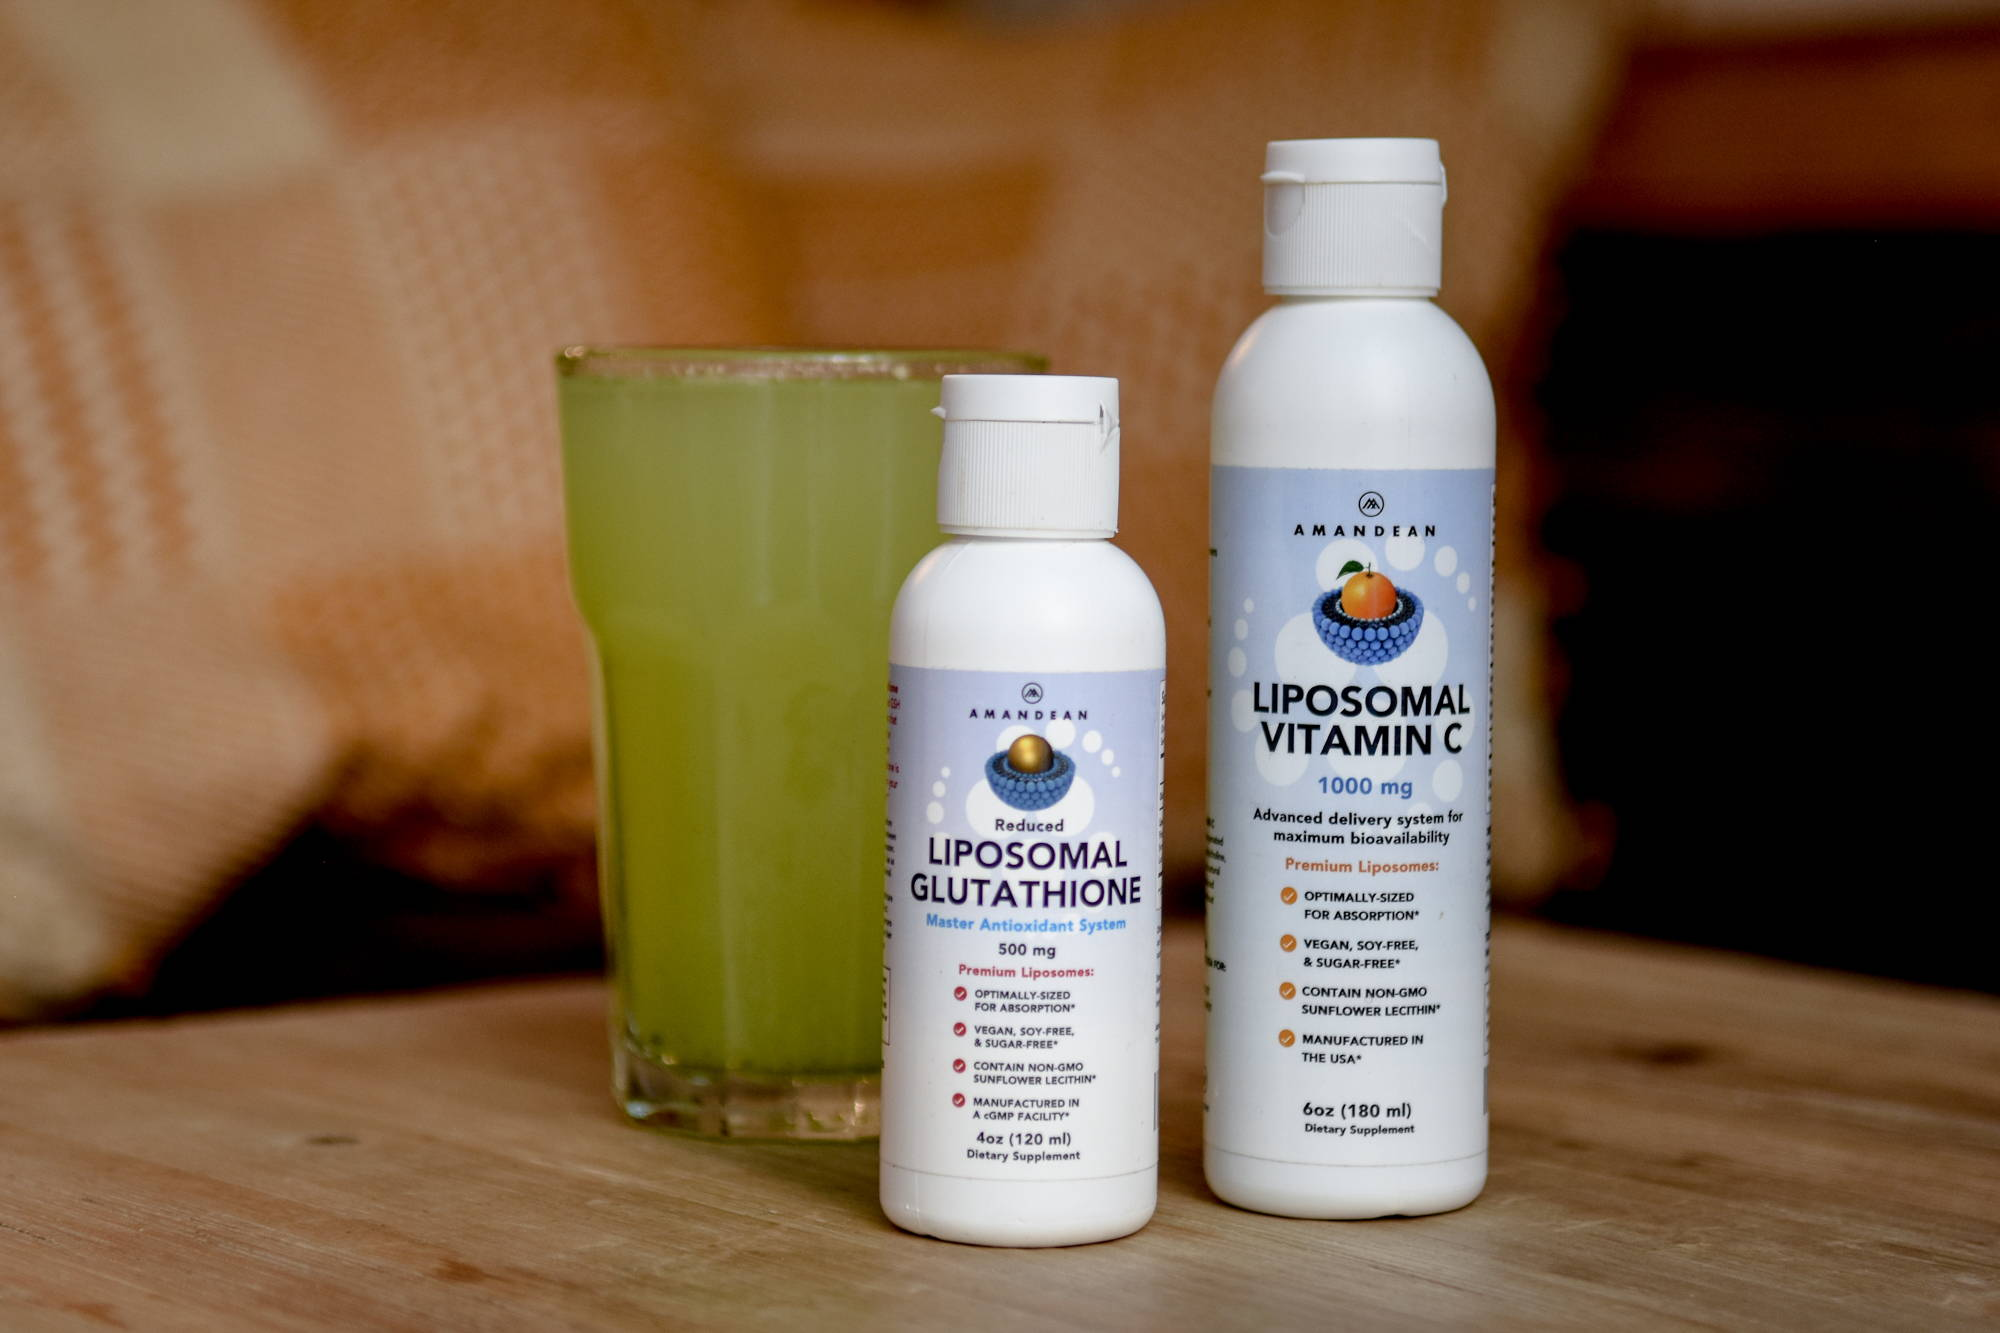 Amandean's High Bioavailability Liposomal Antioxidants